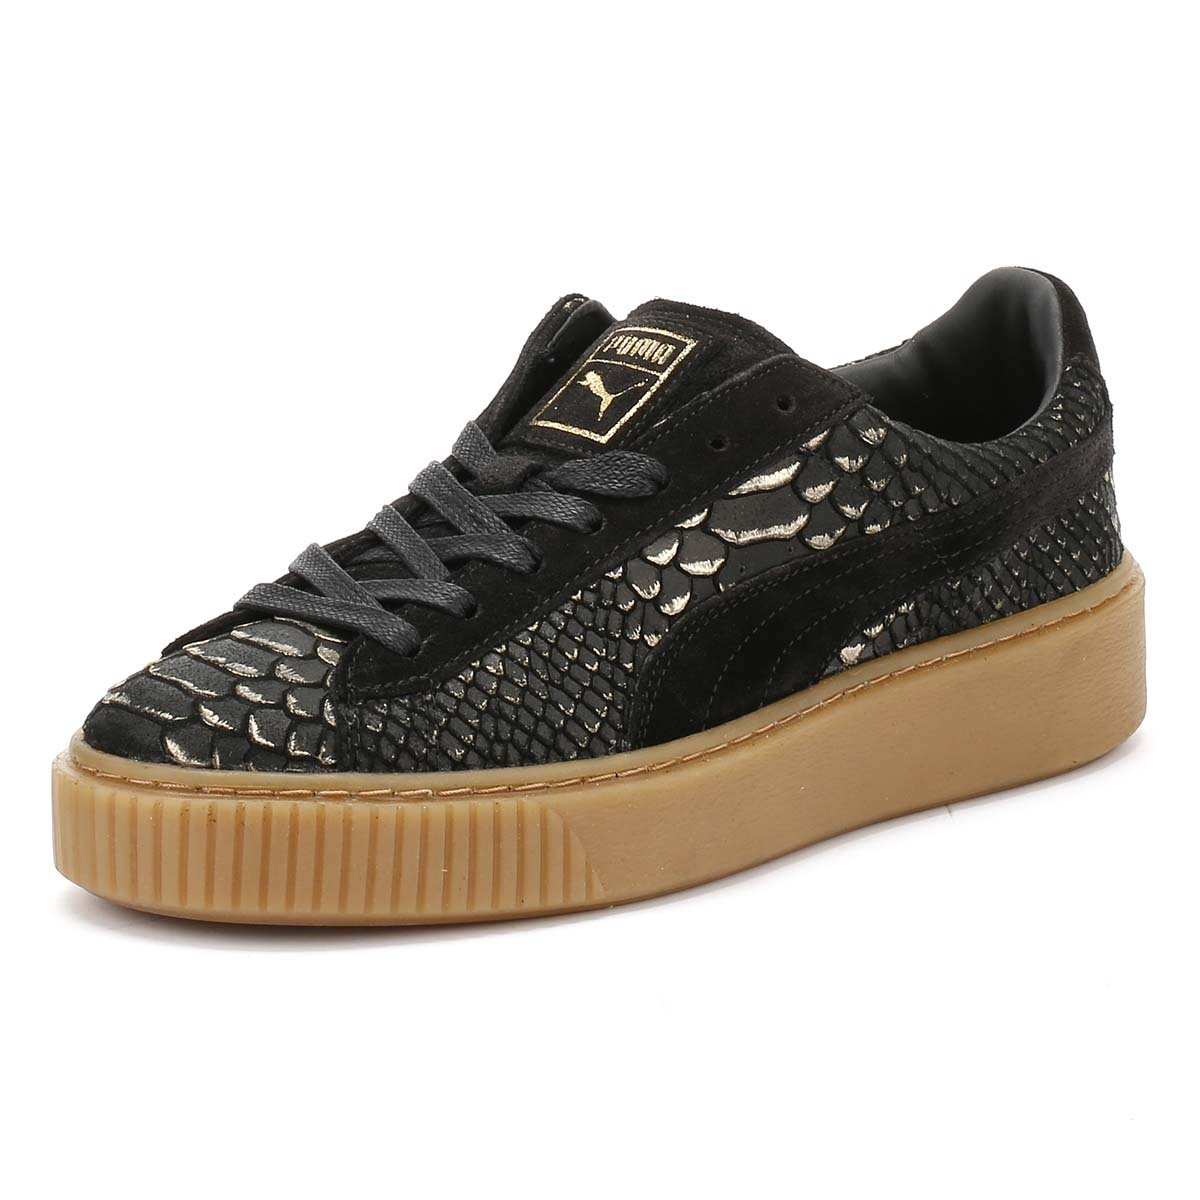 dfcff0d773b02a Puma Womens Black Gold Basket Exotic Skin Platform Trainers  Amazon.co.uk   Shoes   Bags